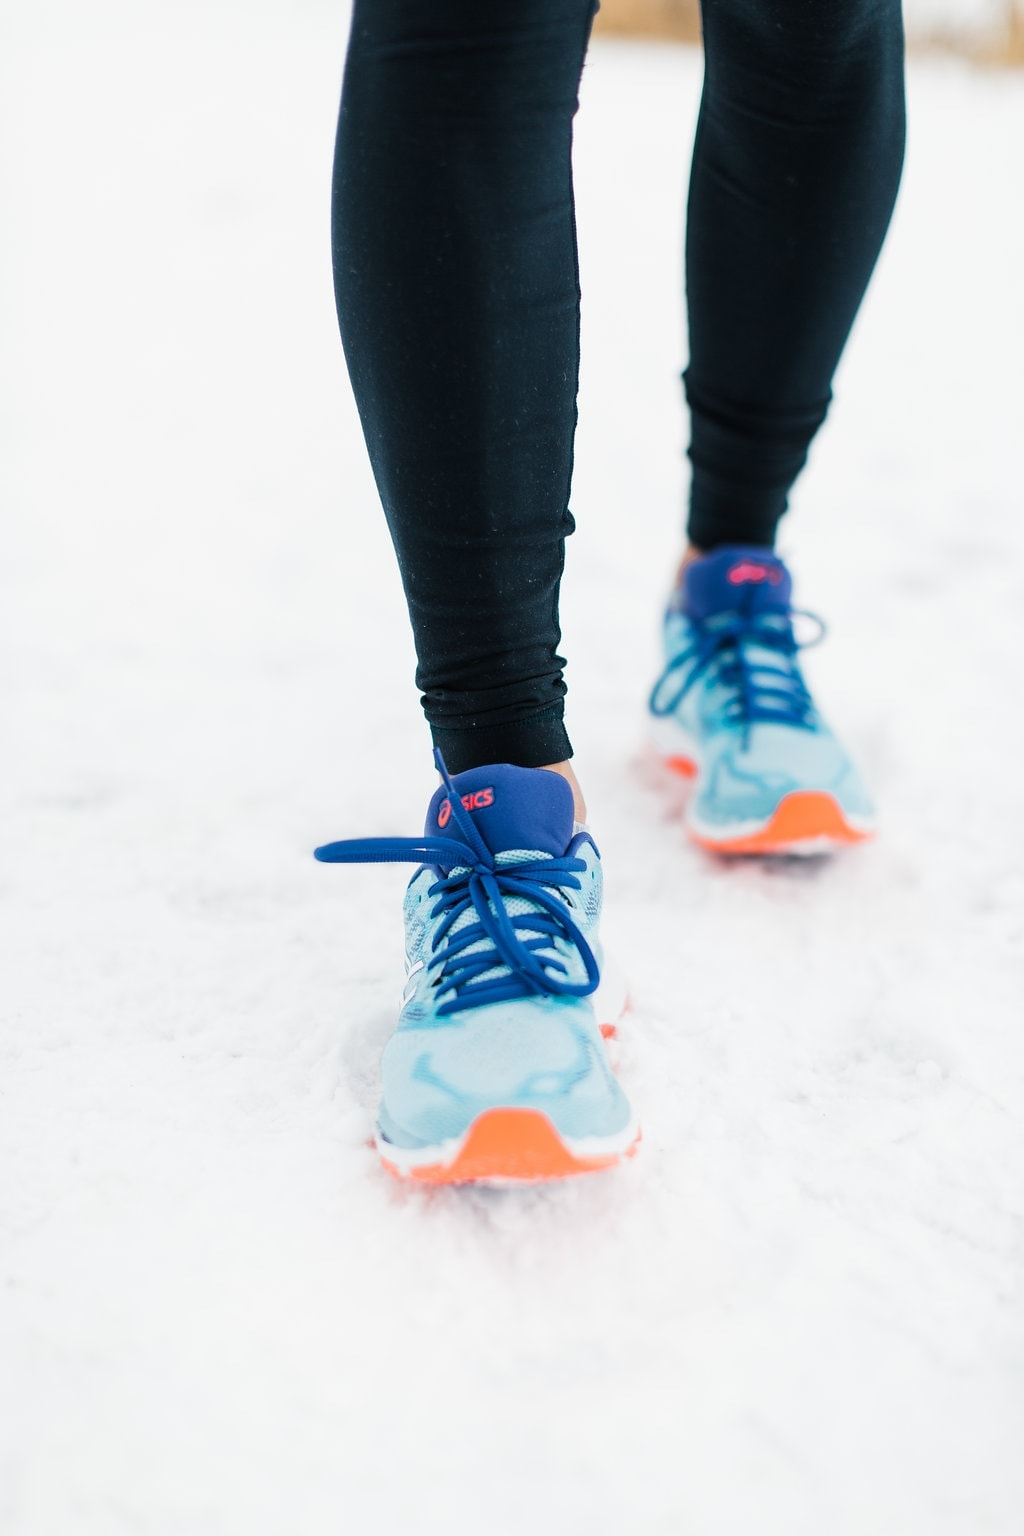 My Running Story + Why My Mindset About Running Needs to Change with the Asics GEL-Nimbus20